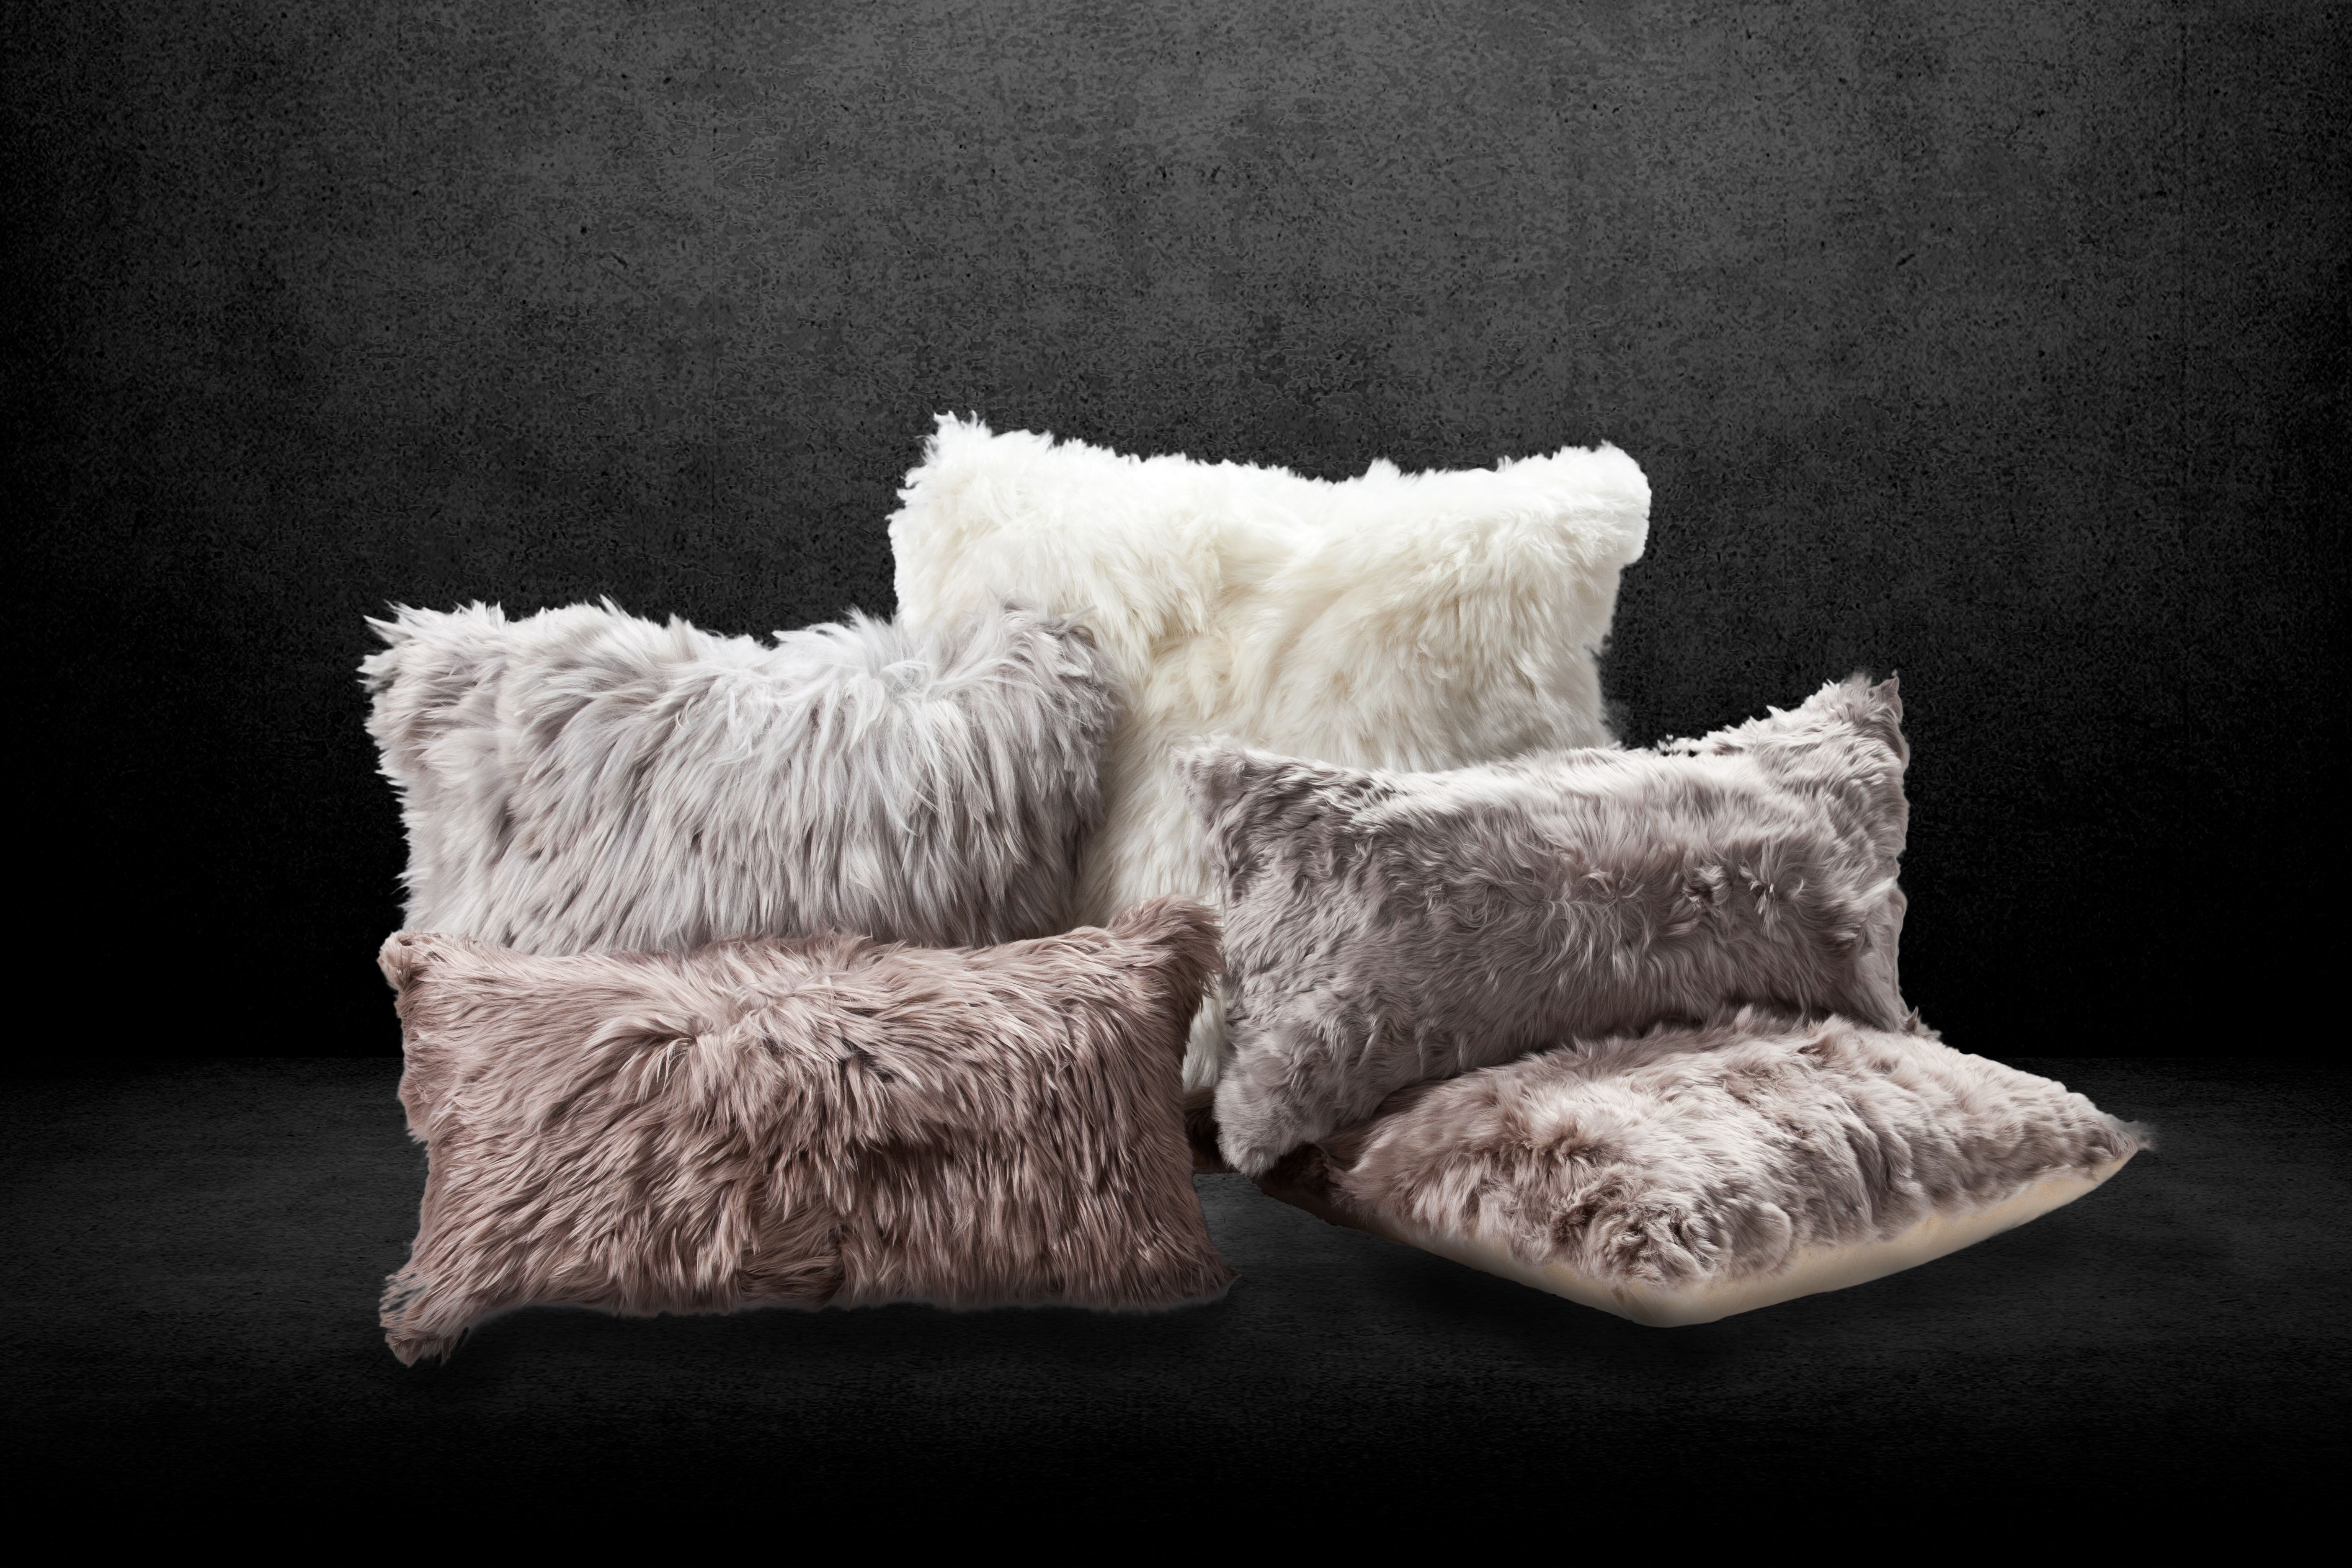 One Of Our Favorite Fibre By Auskin Products Alpaca Cushions The Softest Silkiest S We Produce Available In And Rugs